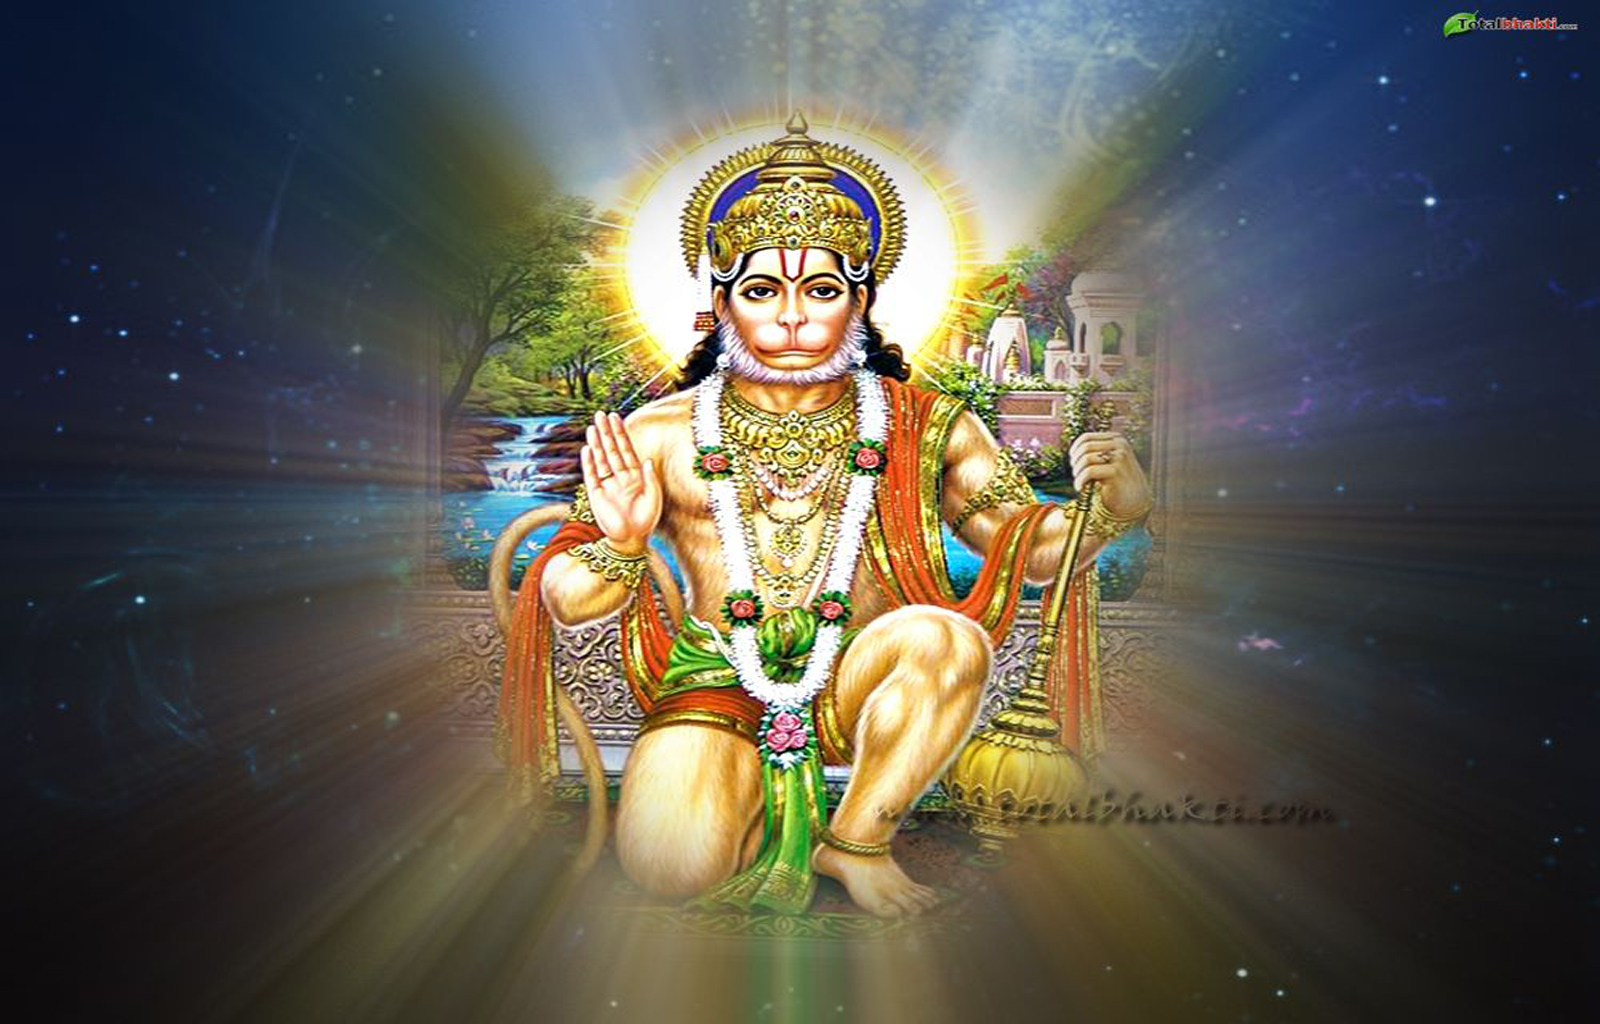 http://4.bp.blogspot.com/-z-chmjHSUz8/UEImvex2qII/AAAAAAAATVc/ib2ZEhdfrP8/s1600/Hanuman-Jayanti-powerful+wallpapers-windows-mac+(4).jpg